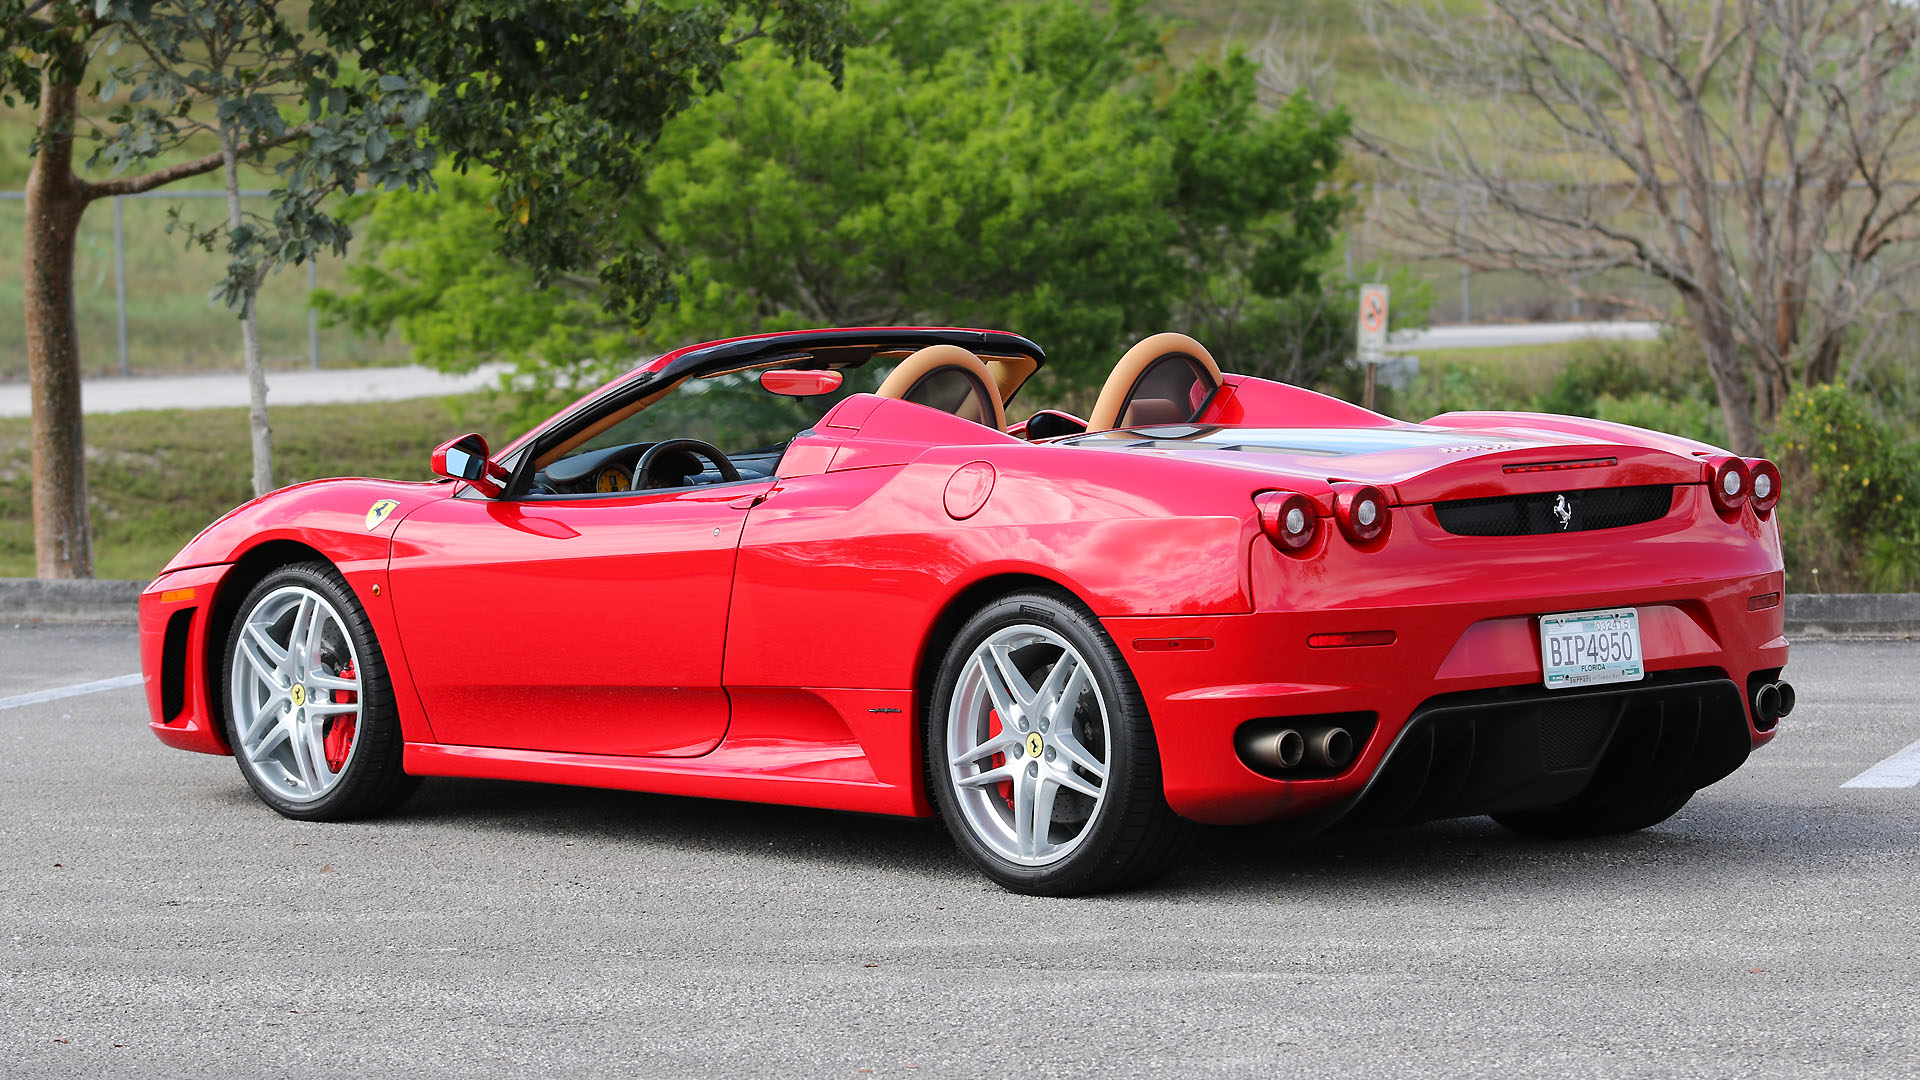 Some pictures of a 2008 Ferrari F430 we'll be testing in the next ...